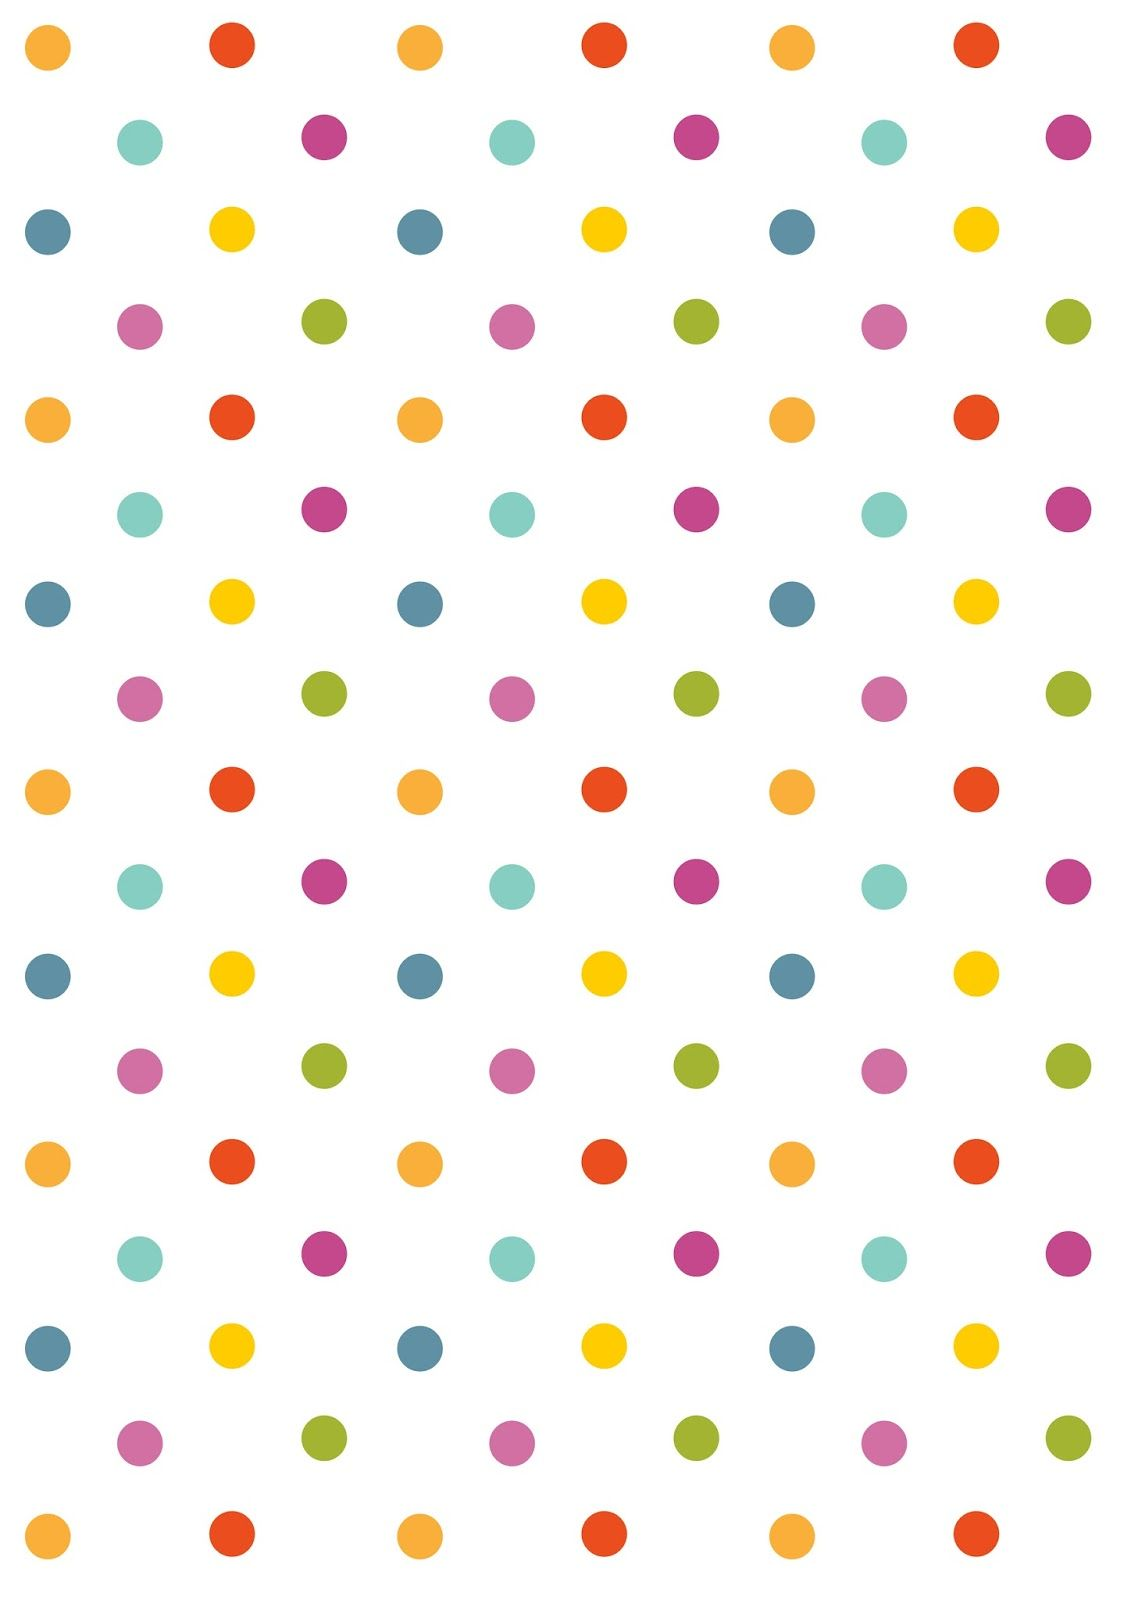 graphic regarding Free Printable Backgrounds for Paper titled Free of charge electronic polka dot sbooking paper - ausdruckbares